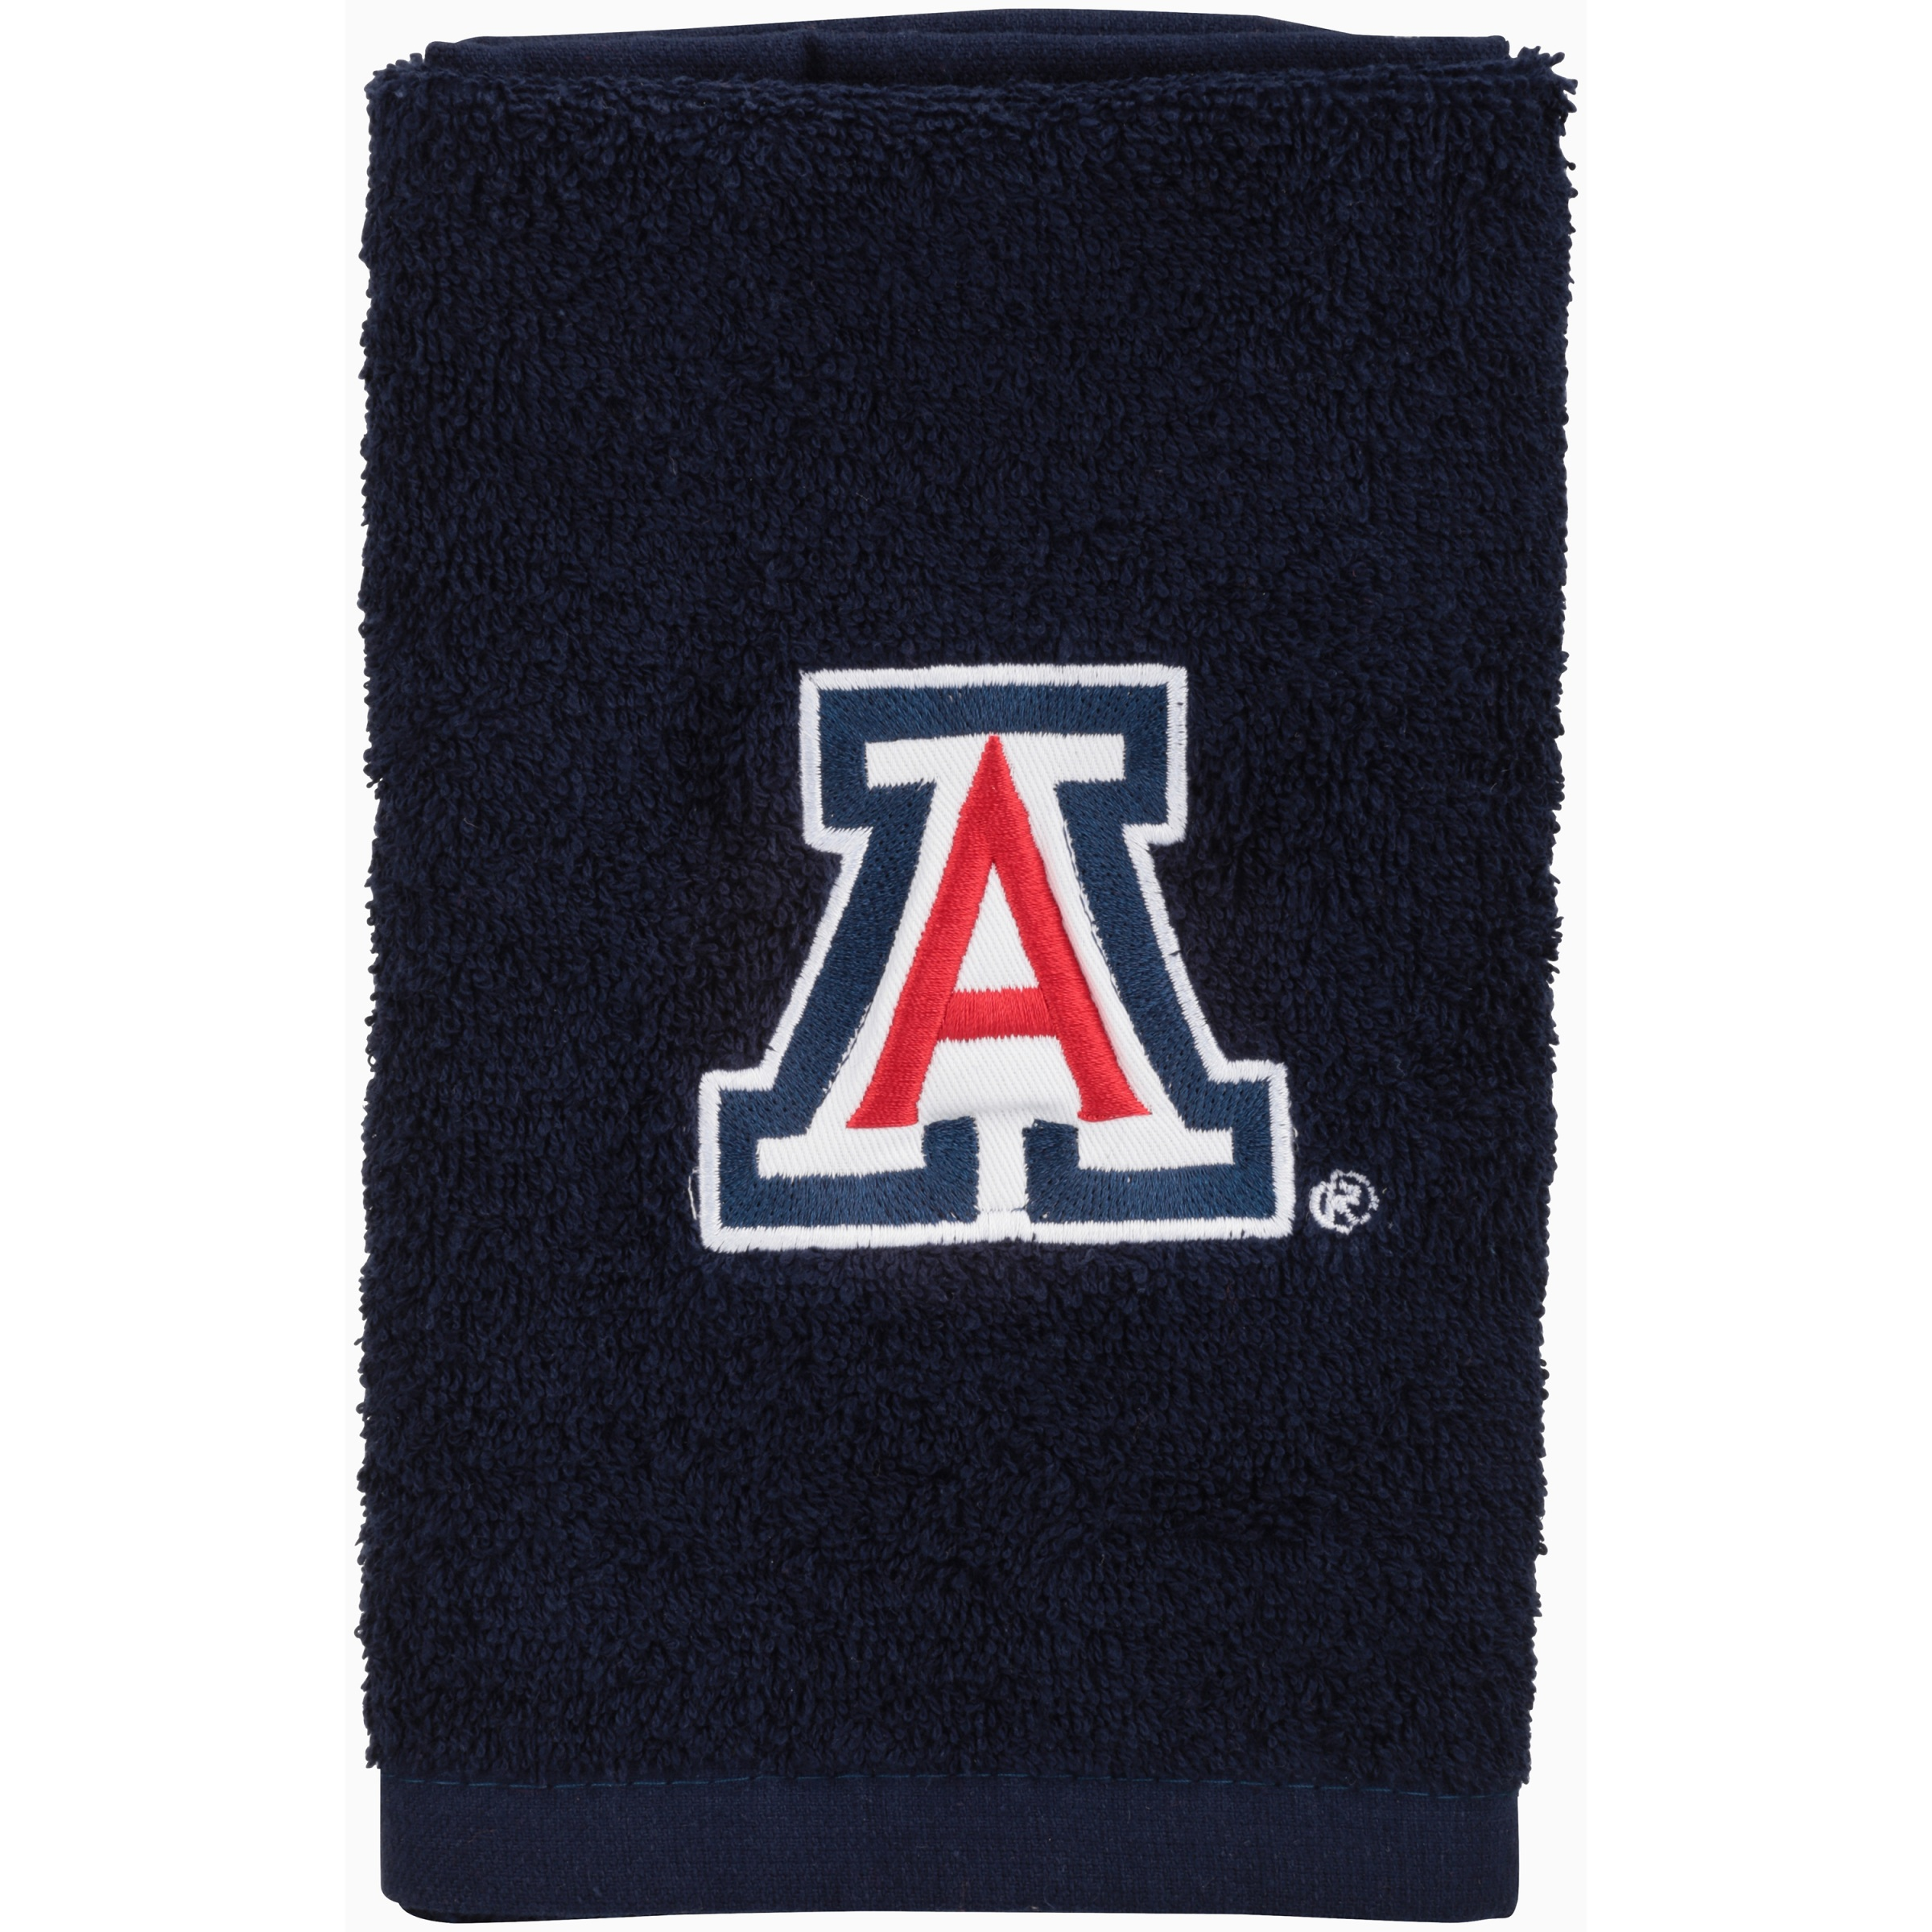 "NCAA Arizona State Wildcats 15"" x 26"" Towel, 1 Each"